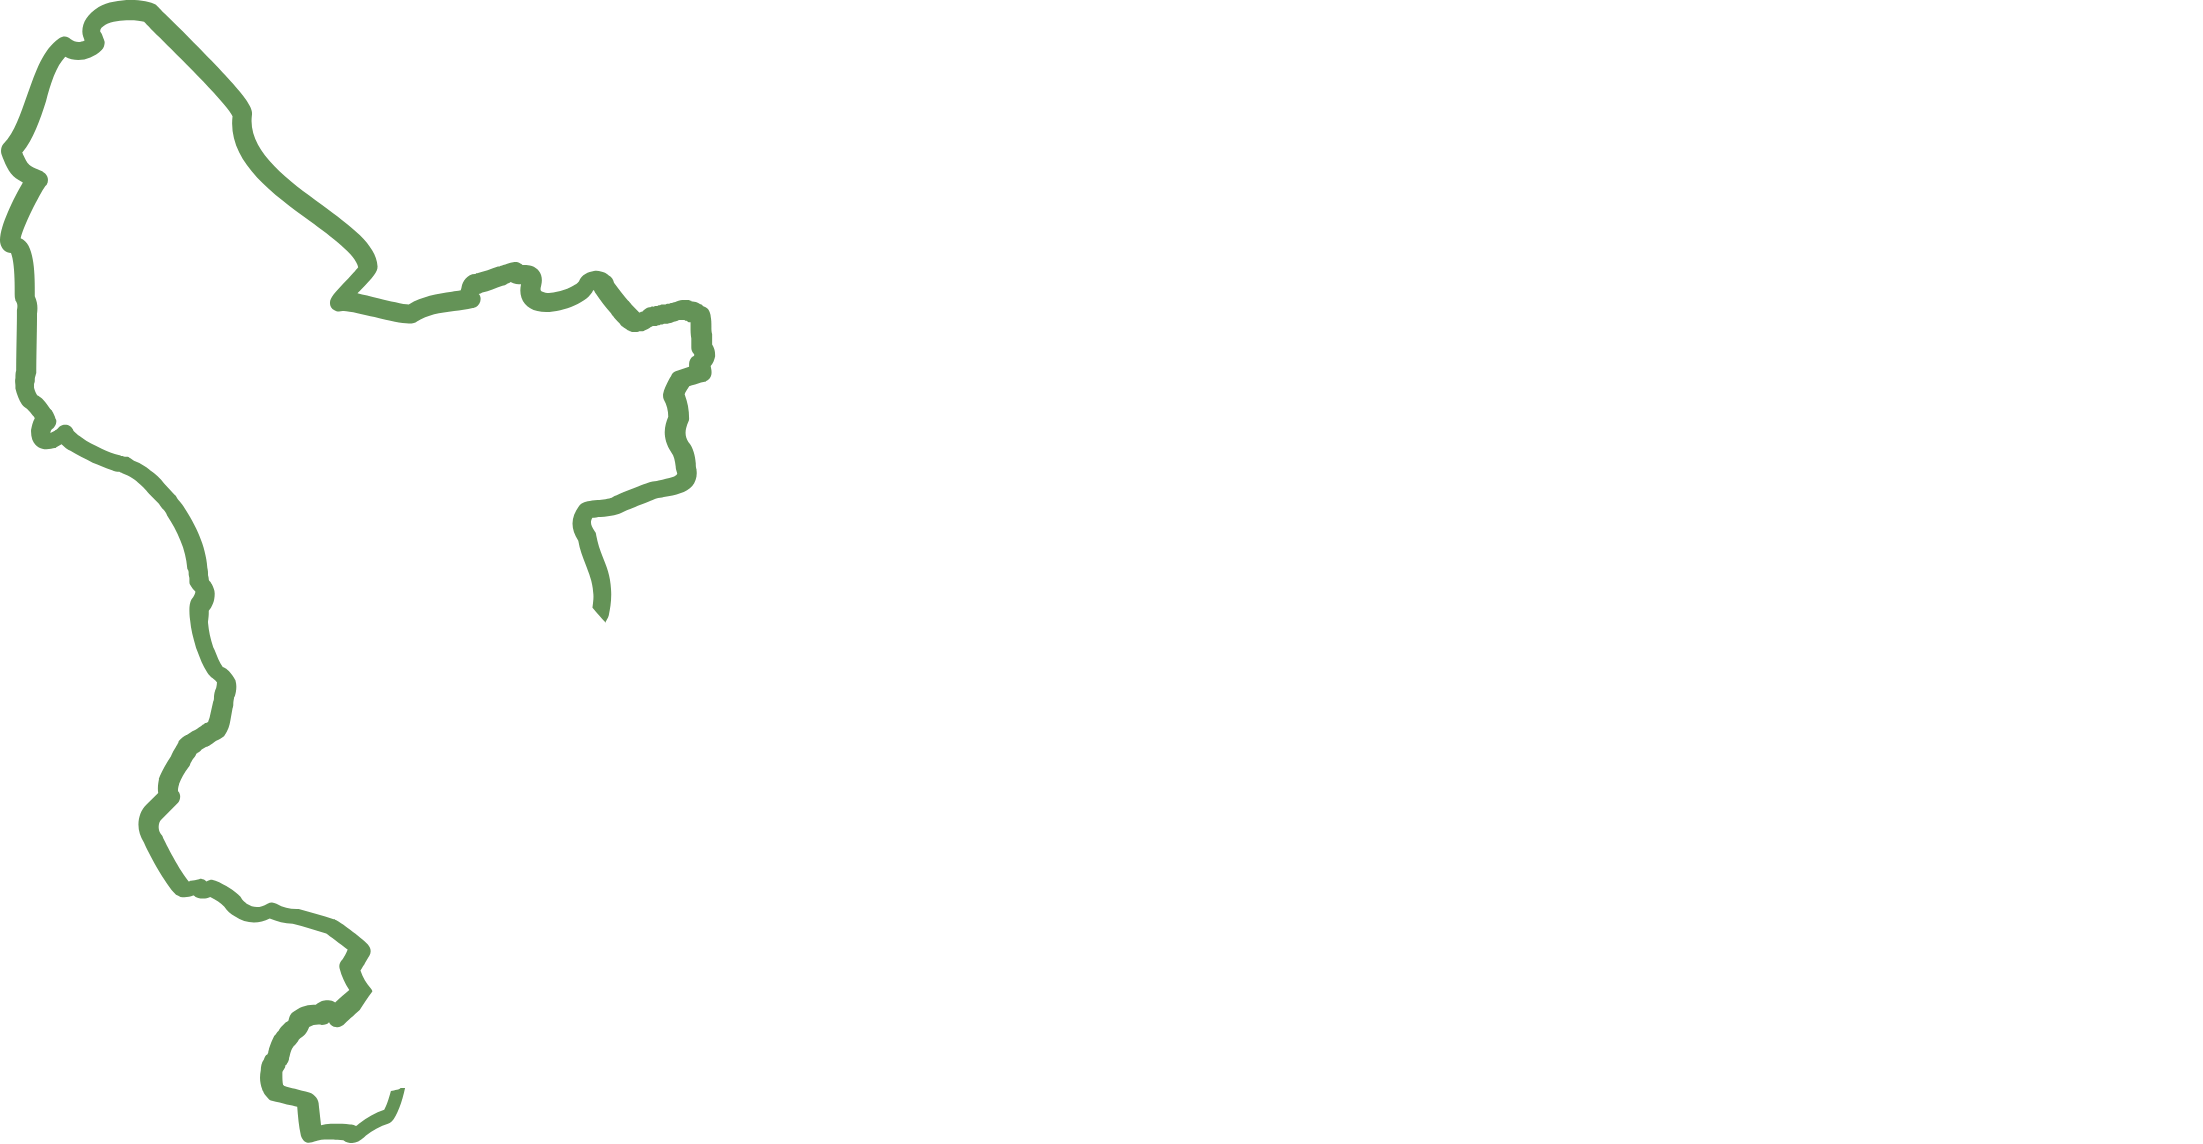 derbyshire bat group logo large